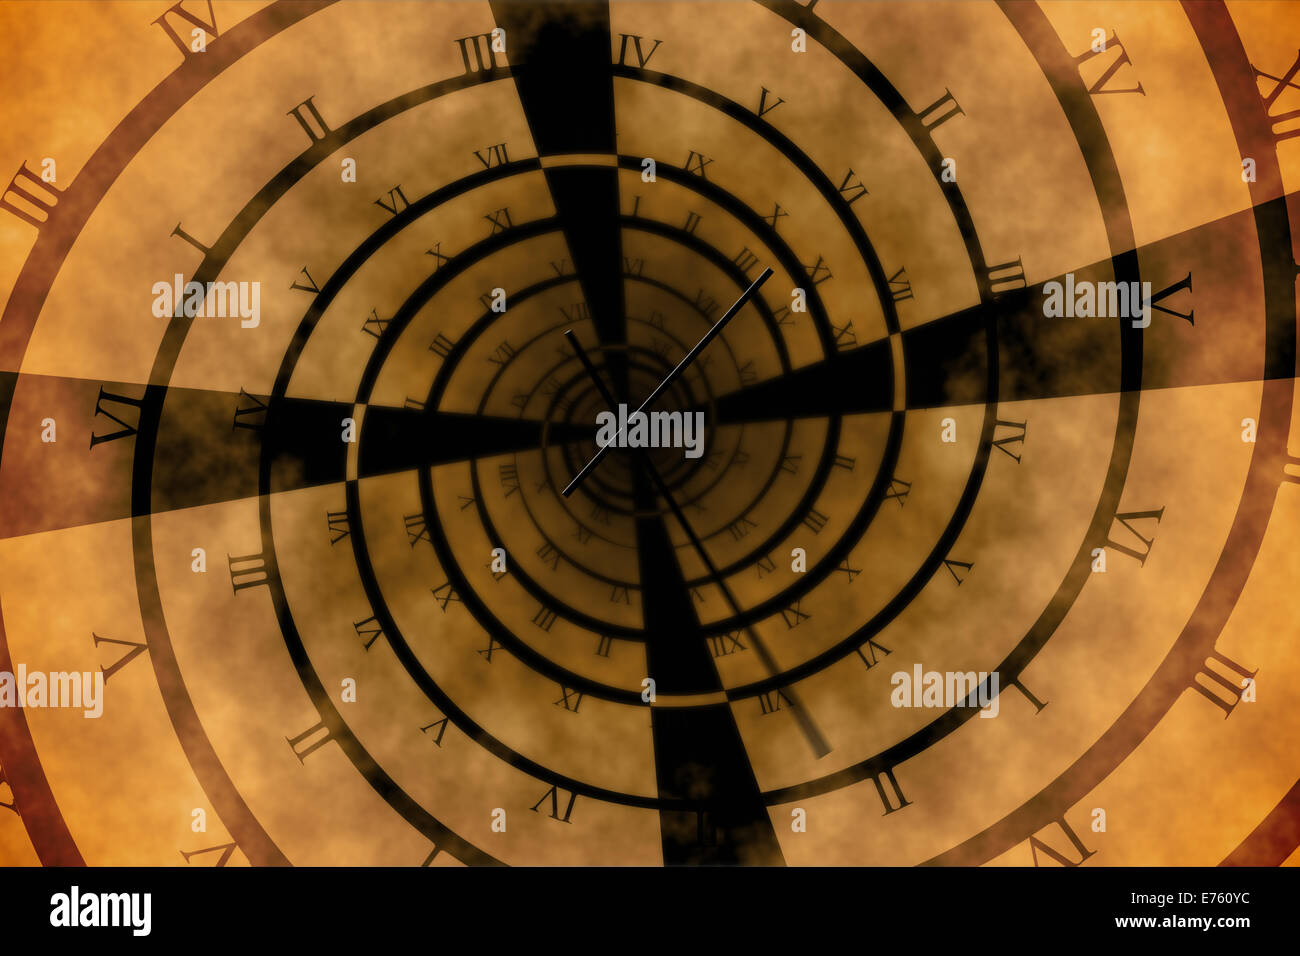 Digitally generated roman numeral clock vortex - Stock Image